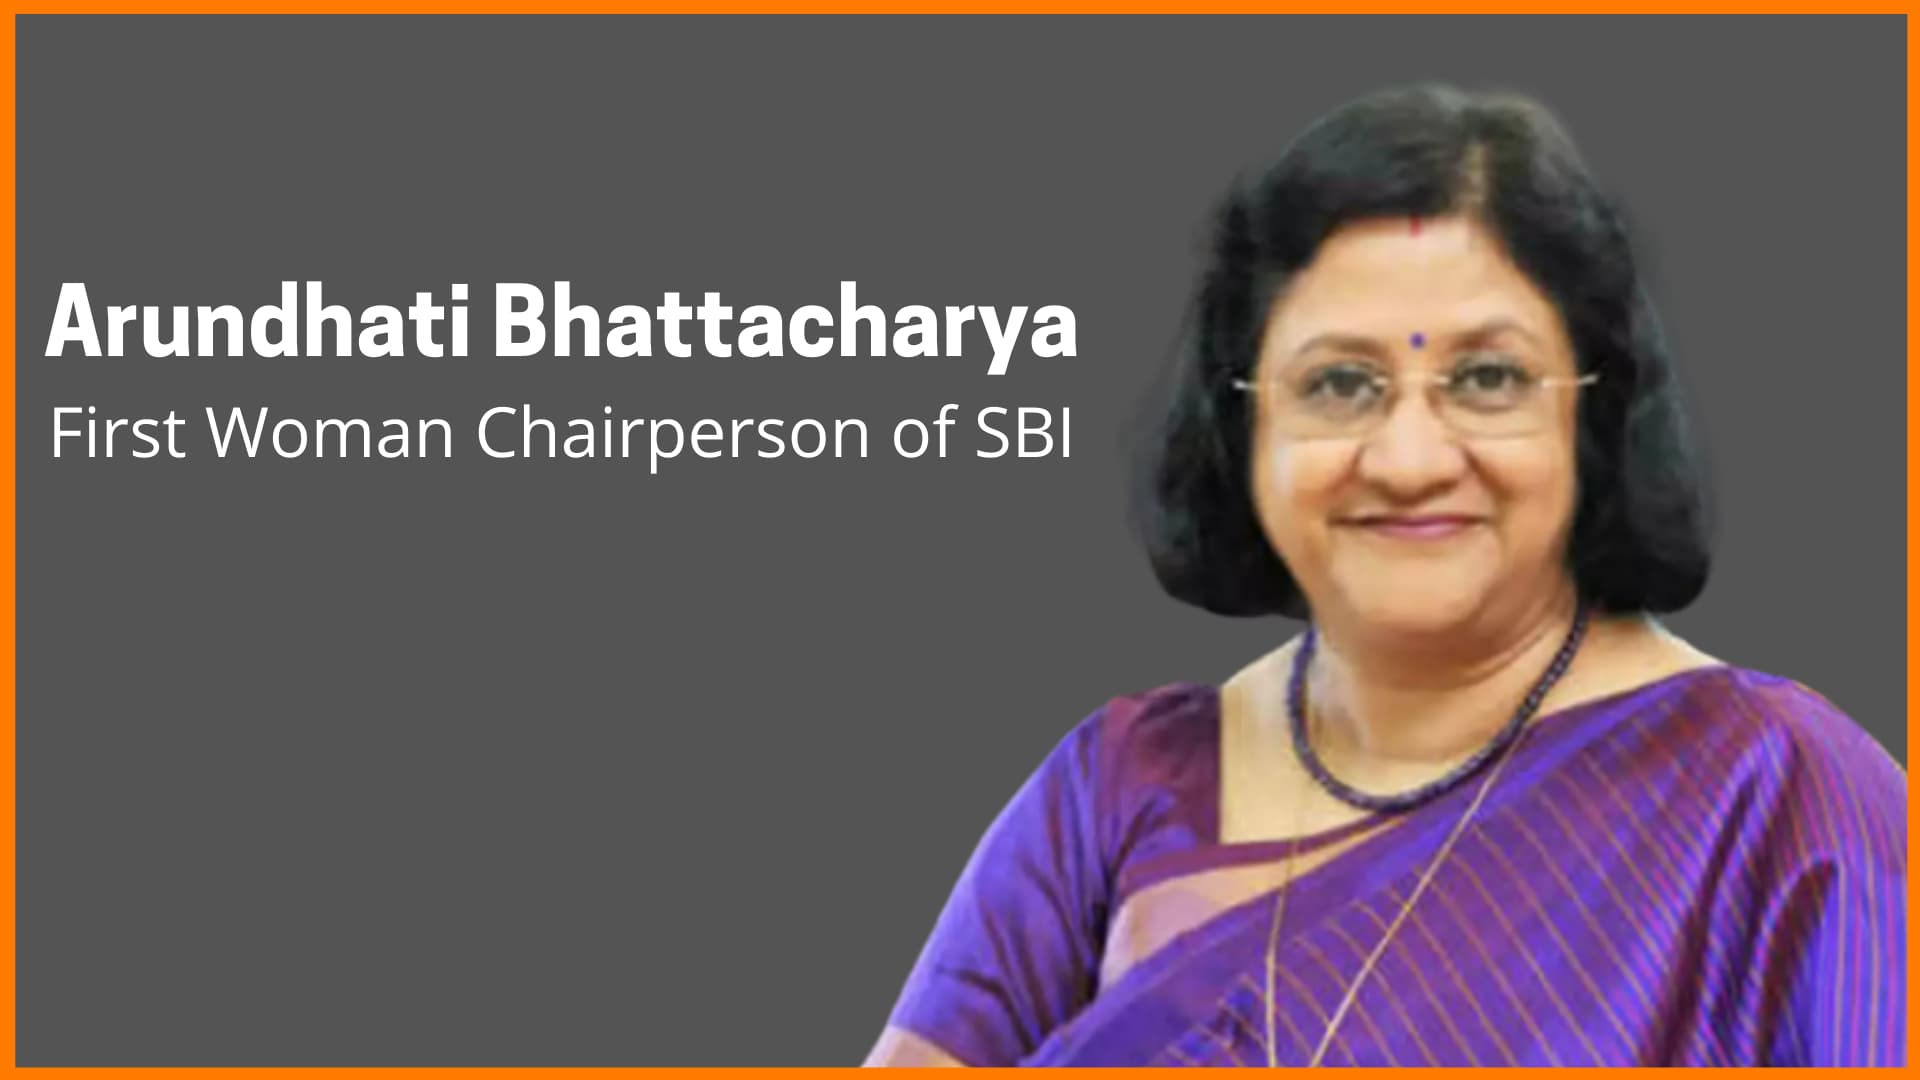 Arundhati Bhattacharya-First Woman Chairperson of the State Bank of India (SBI)